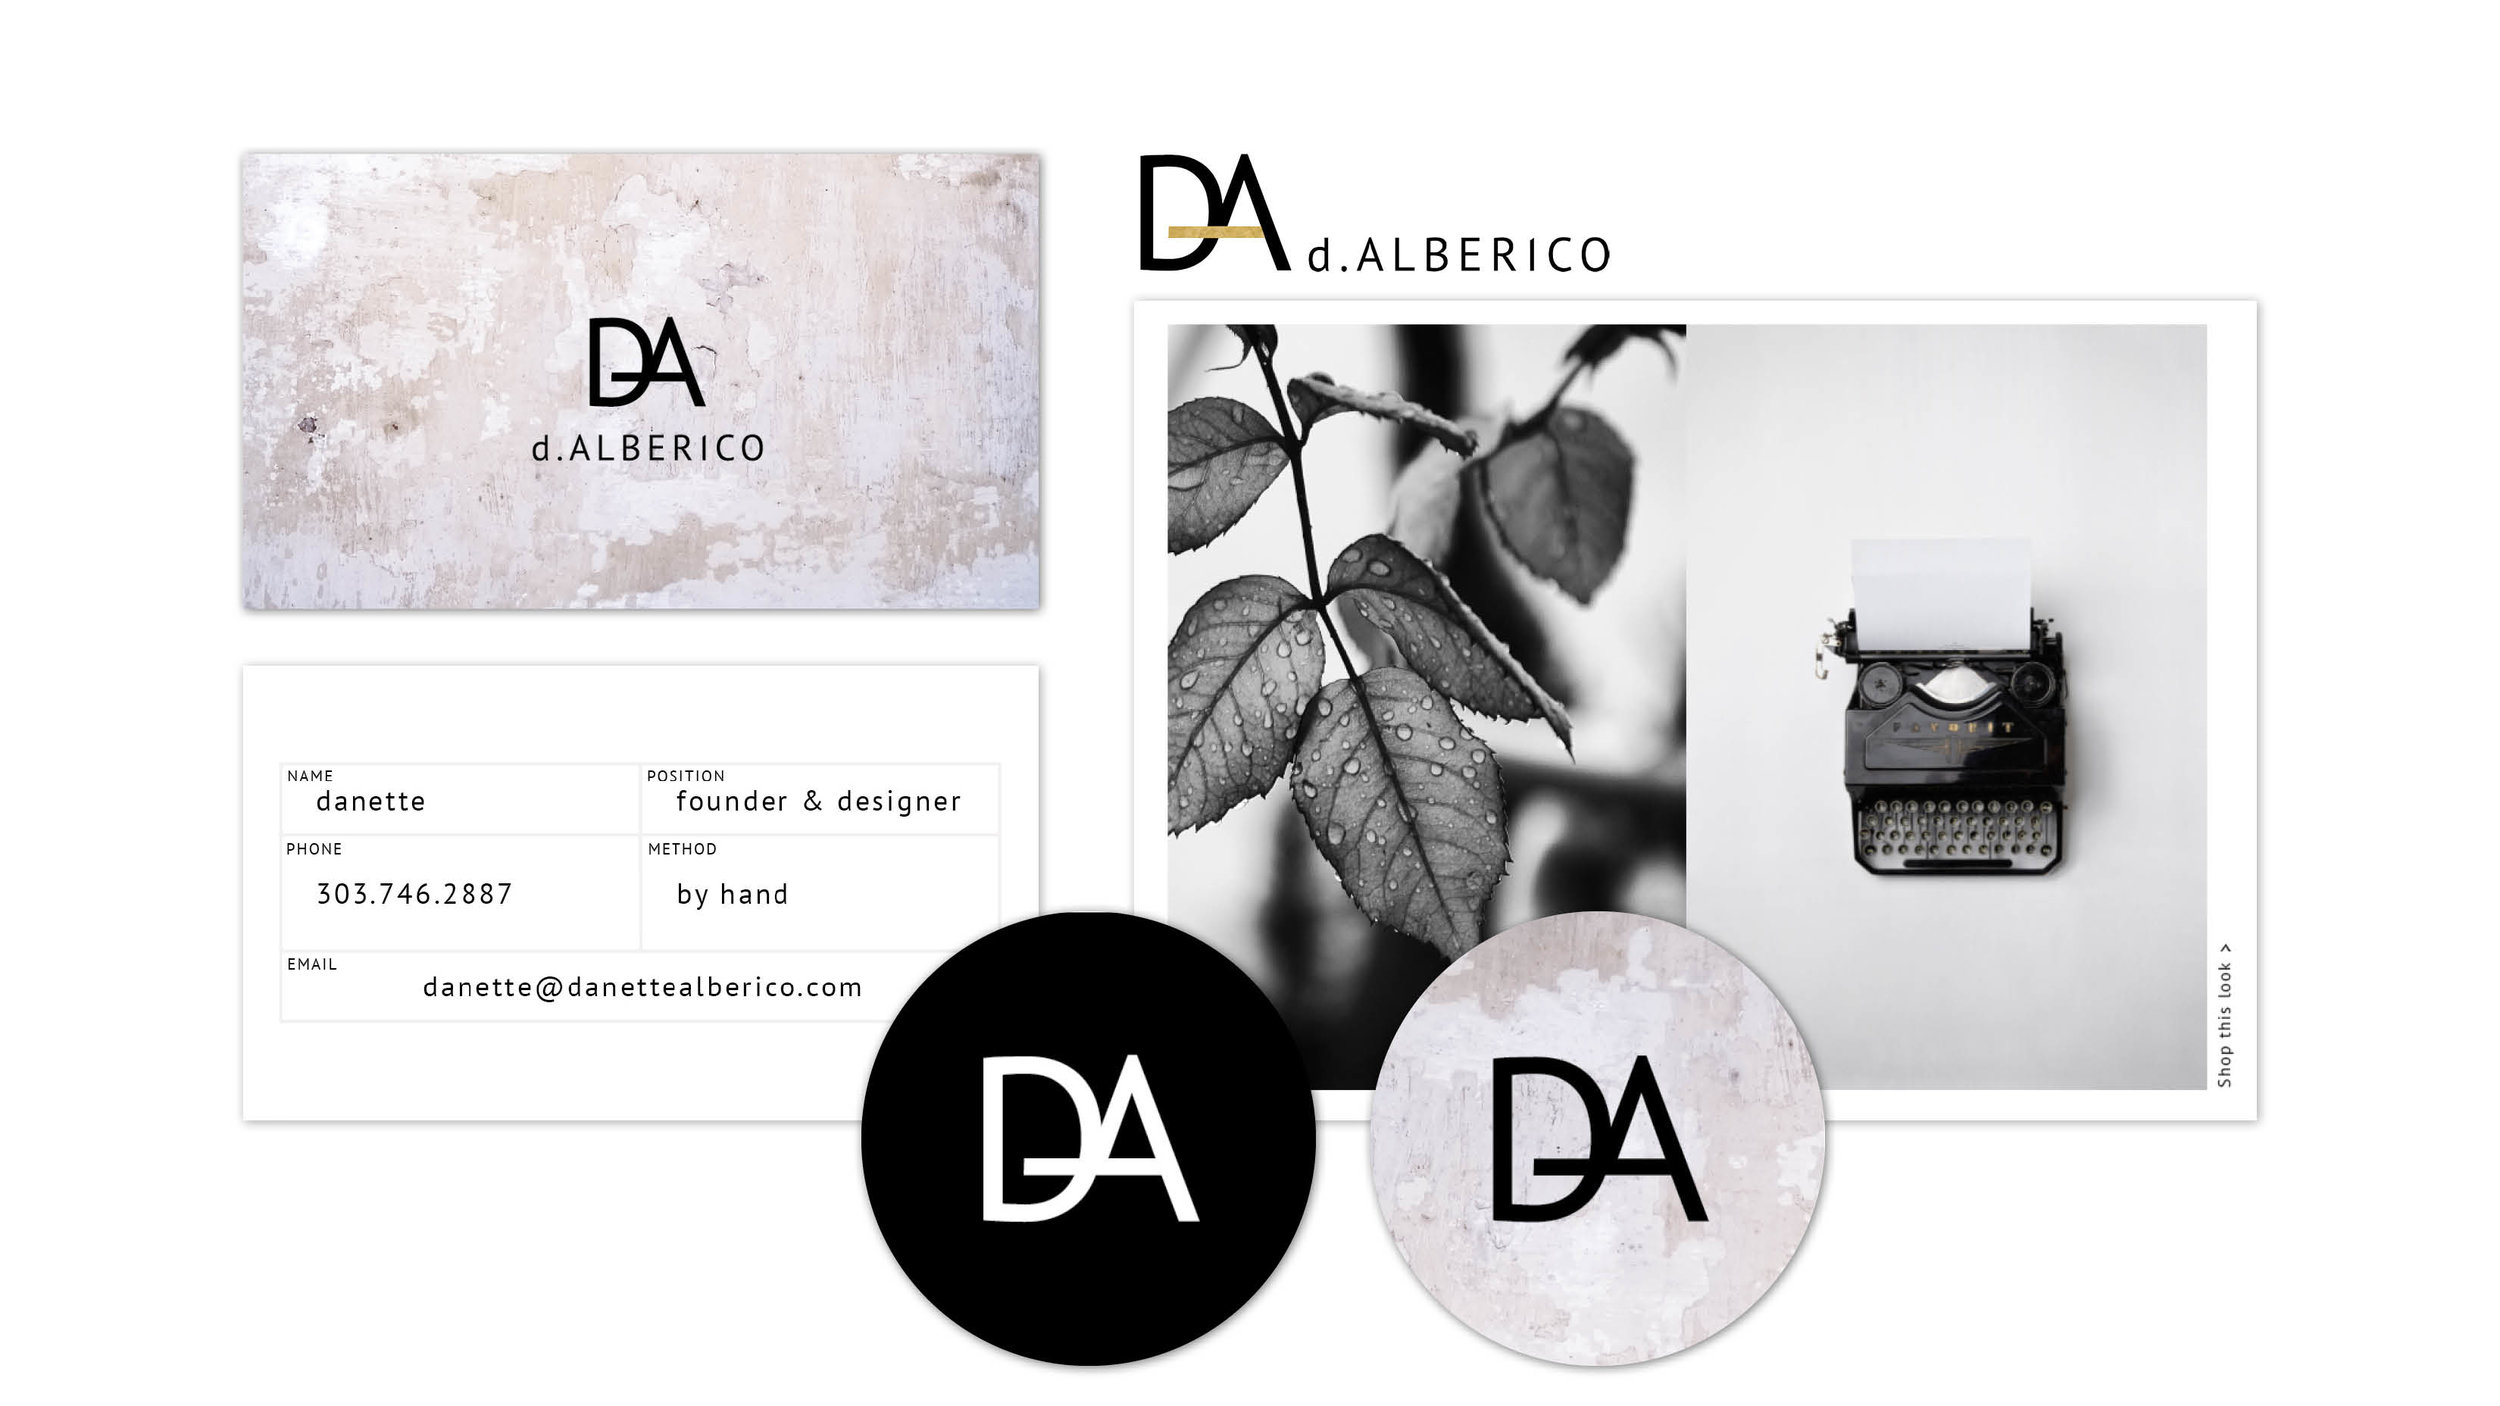 Stephanie Wencl, of SW Designs created collateral for Danette Alberico. These graphic design projects consists of Business Cards, stickers, tags and promotional cards